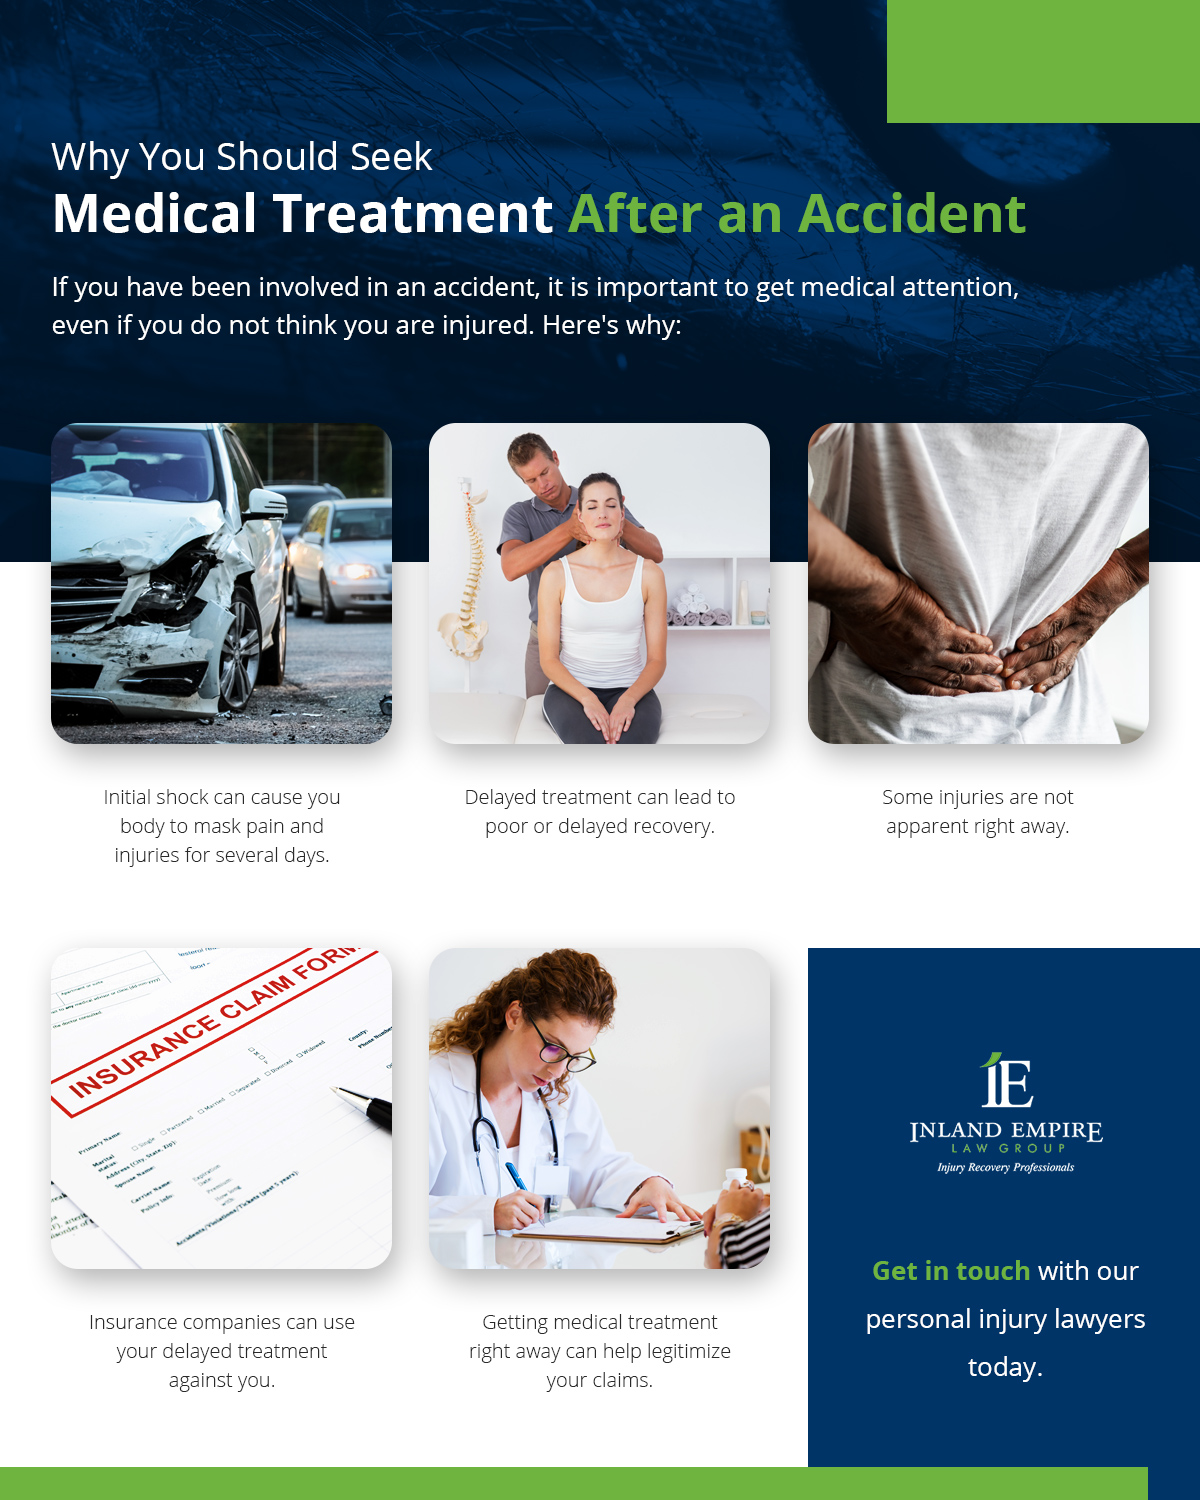 Why you should seek medical treatment immediately after an accident